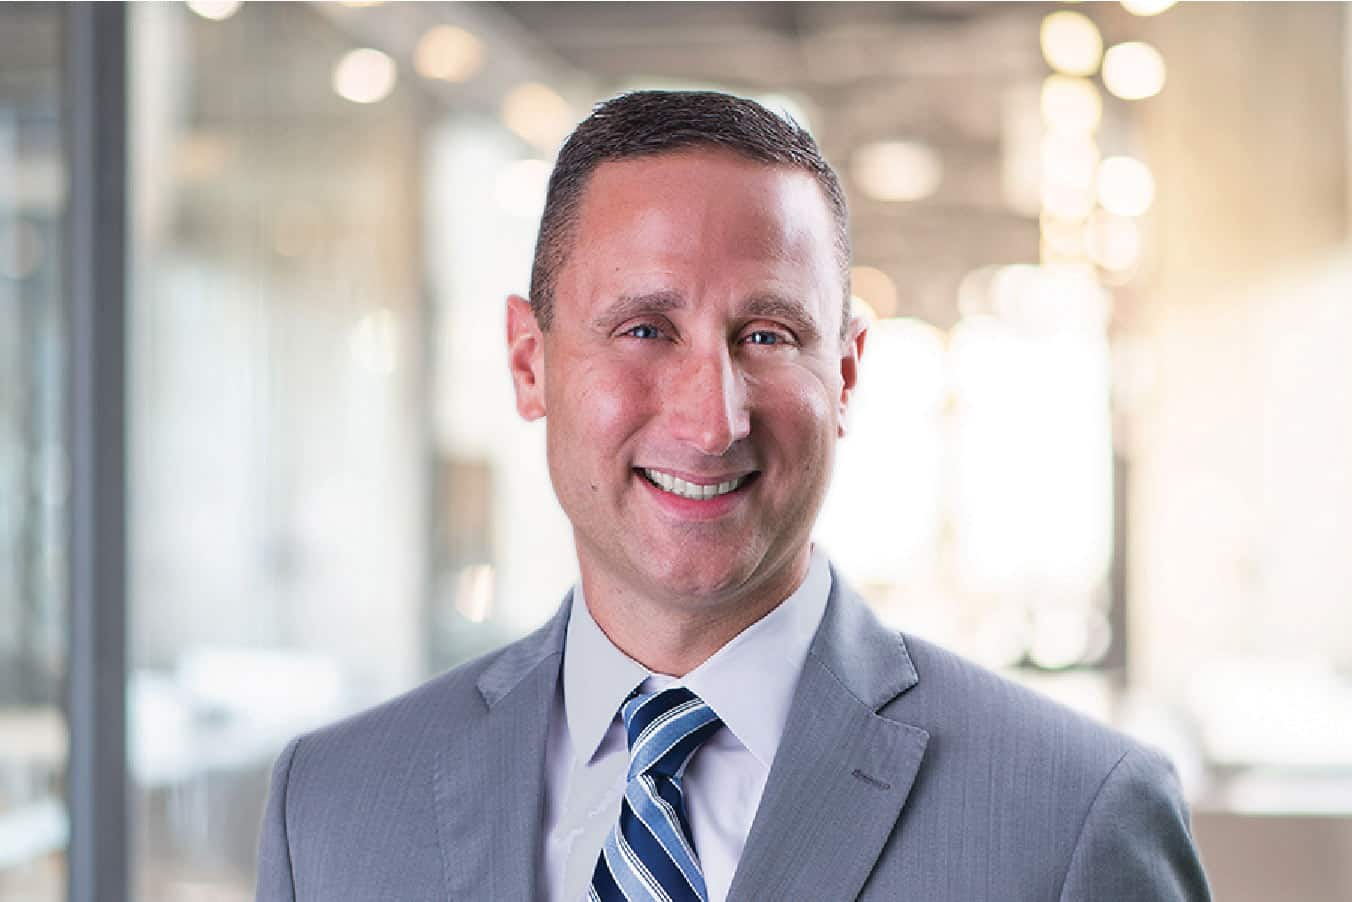 Jim Trimarco Joins OutMatch As Chief Sales Officer To Lead Sales Process, Strategy,  And Day-to-Day Execution Across All Target Segments